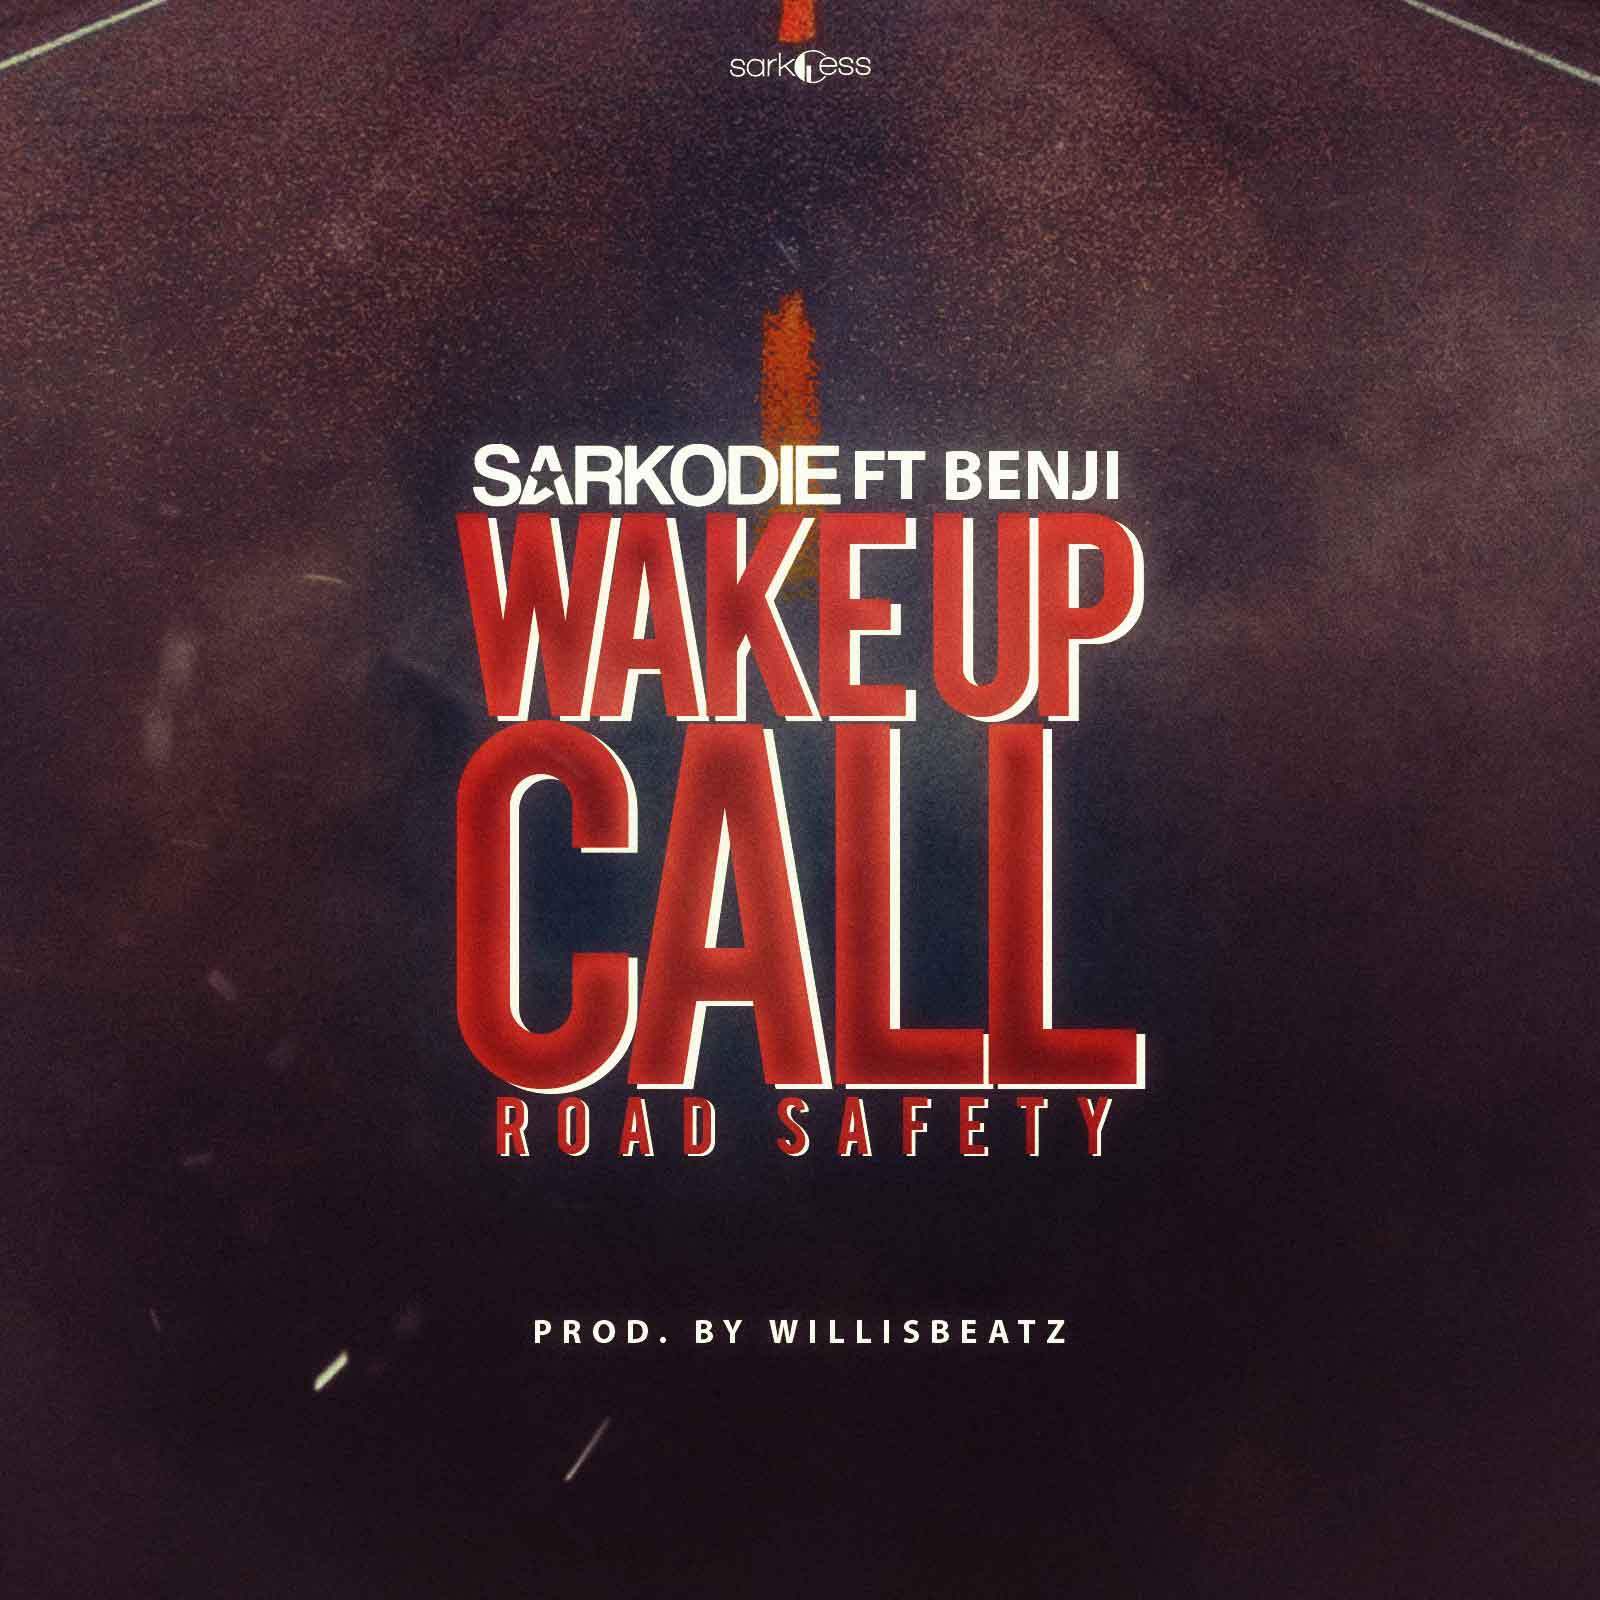 Wake Up Call (Road Safety) by Sarkodie ft. Benji